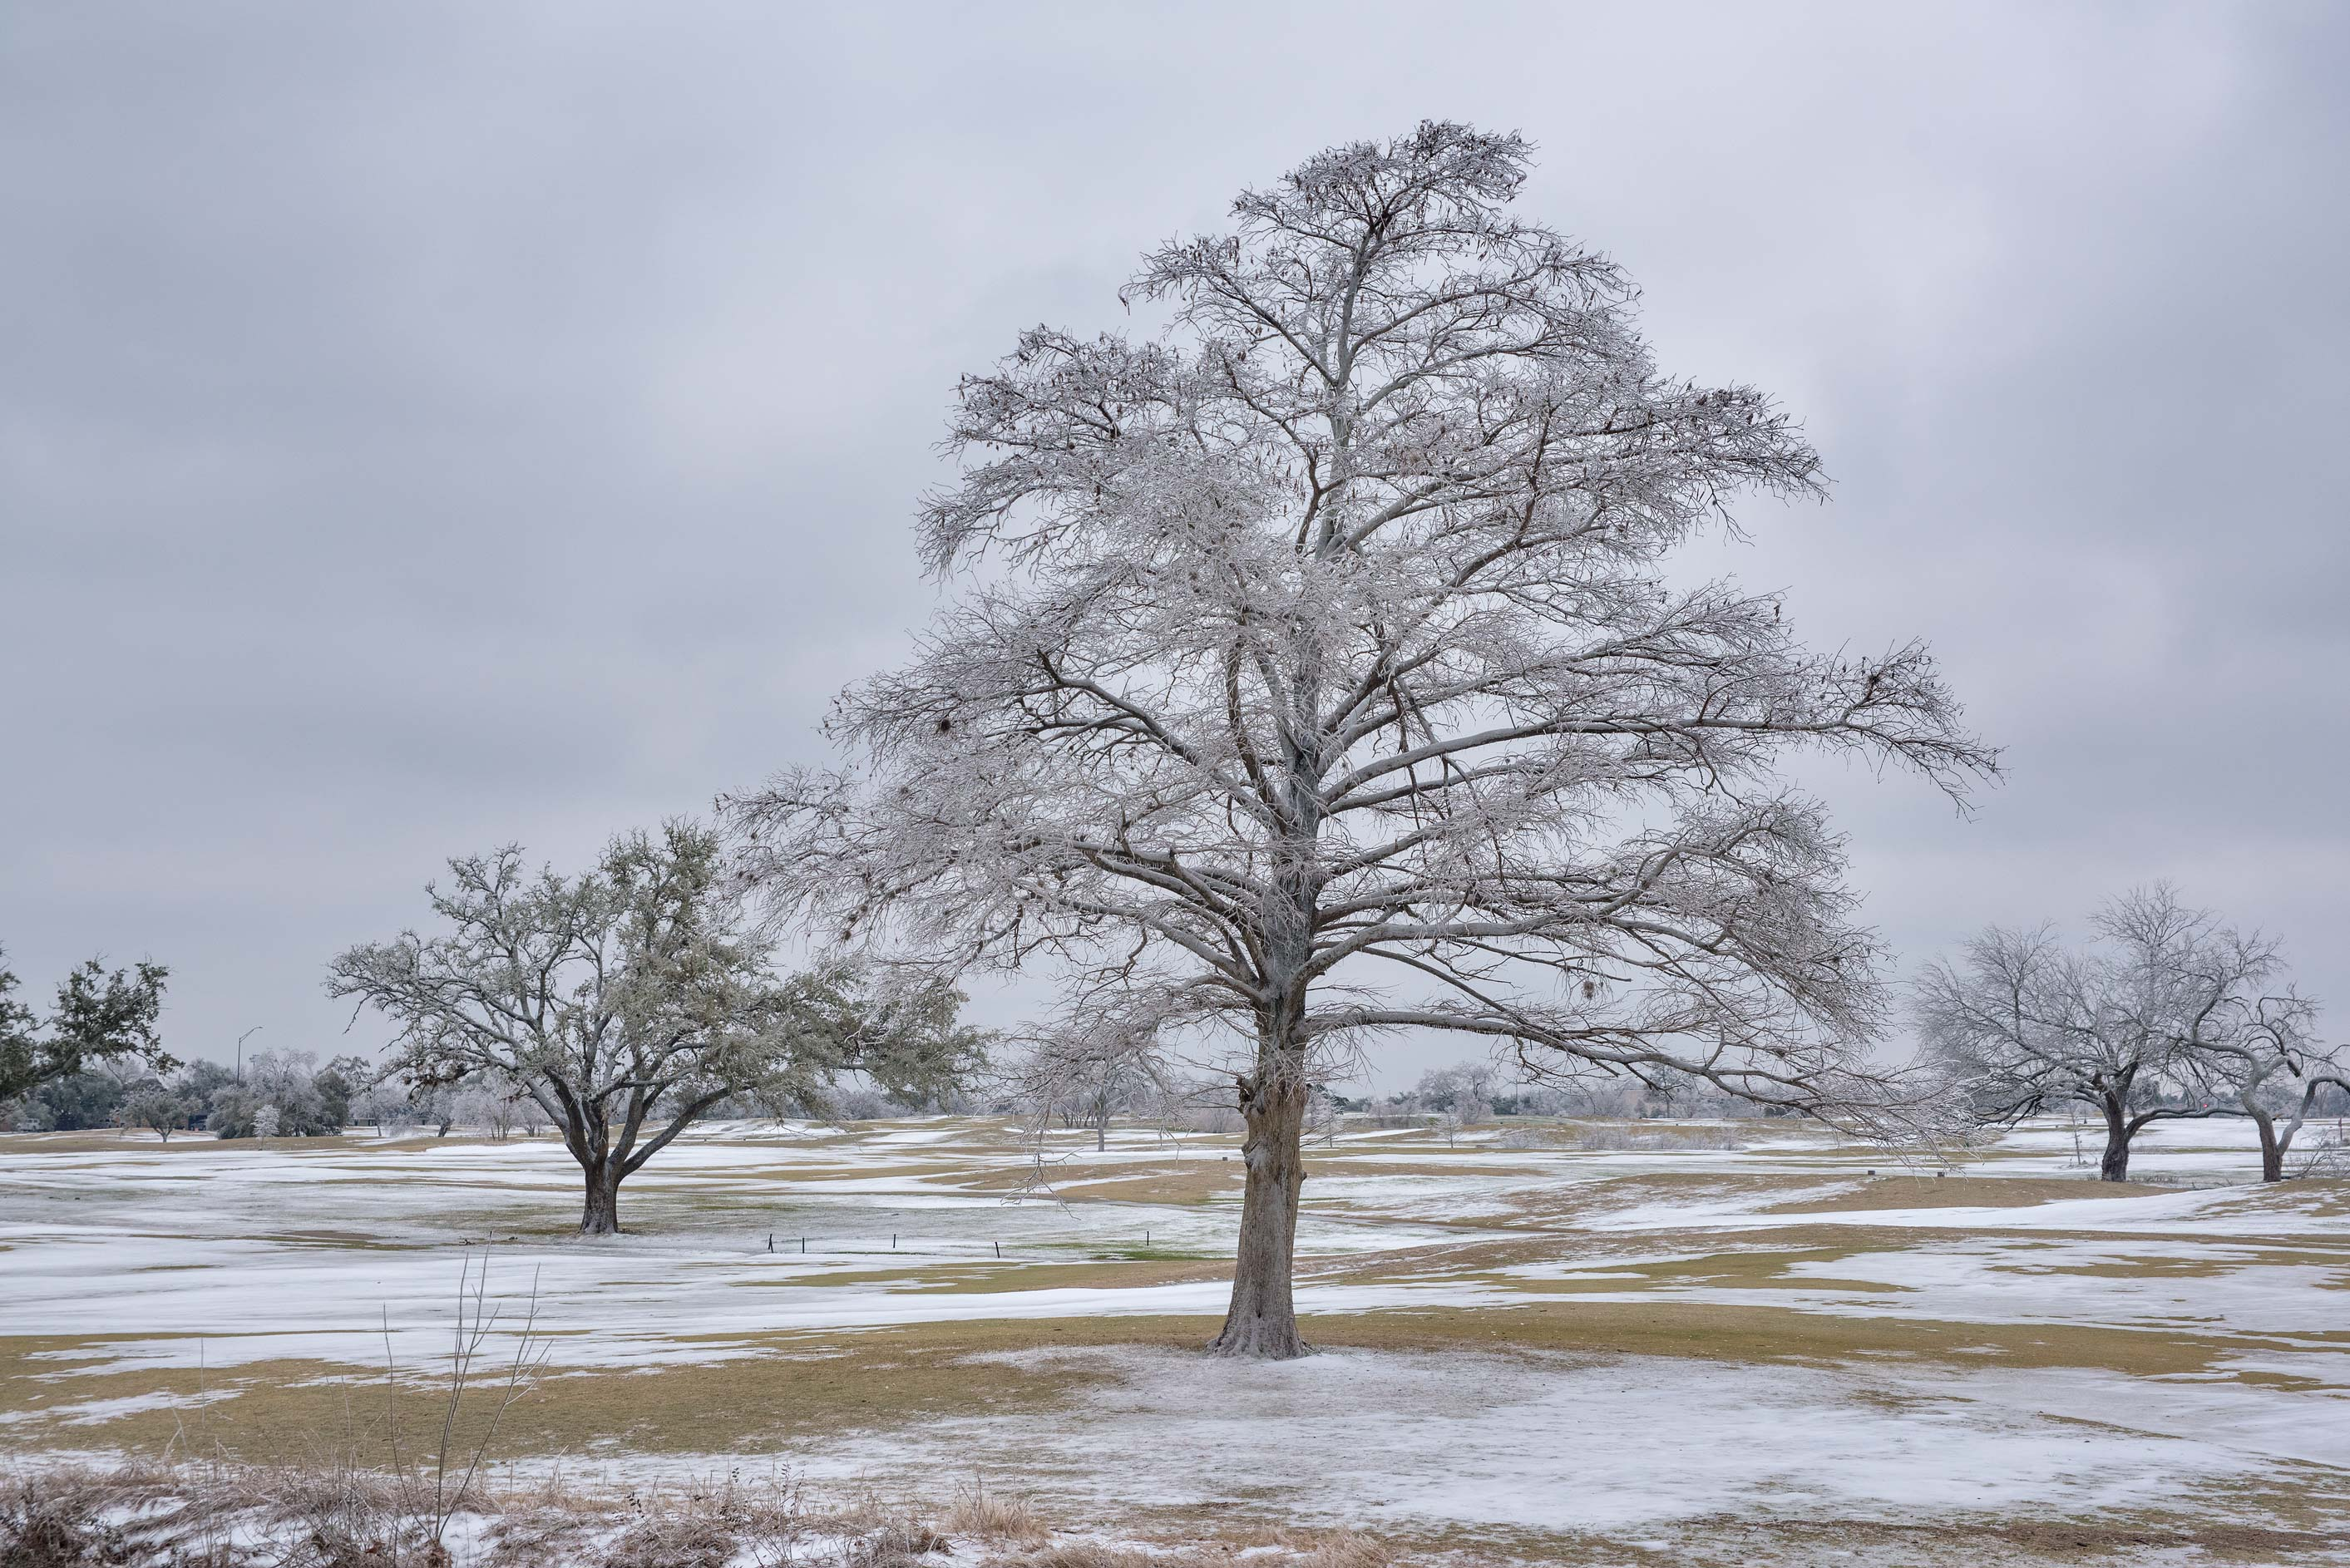 A tree with icing on a golf course on campus of...M University. College Station, Texas